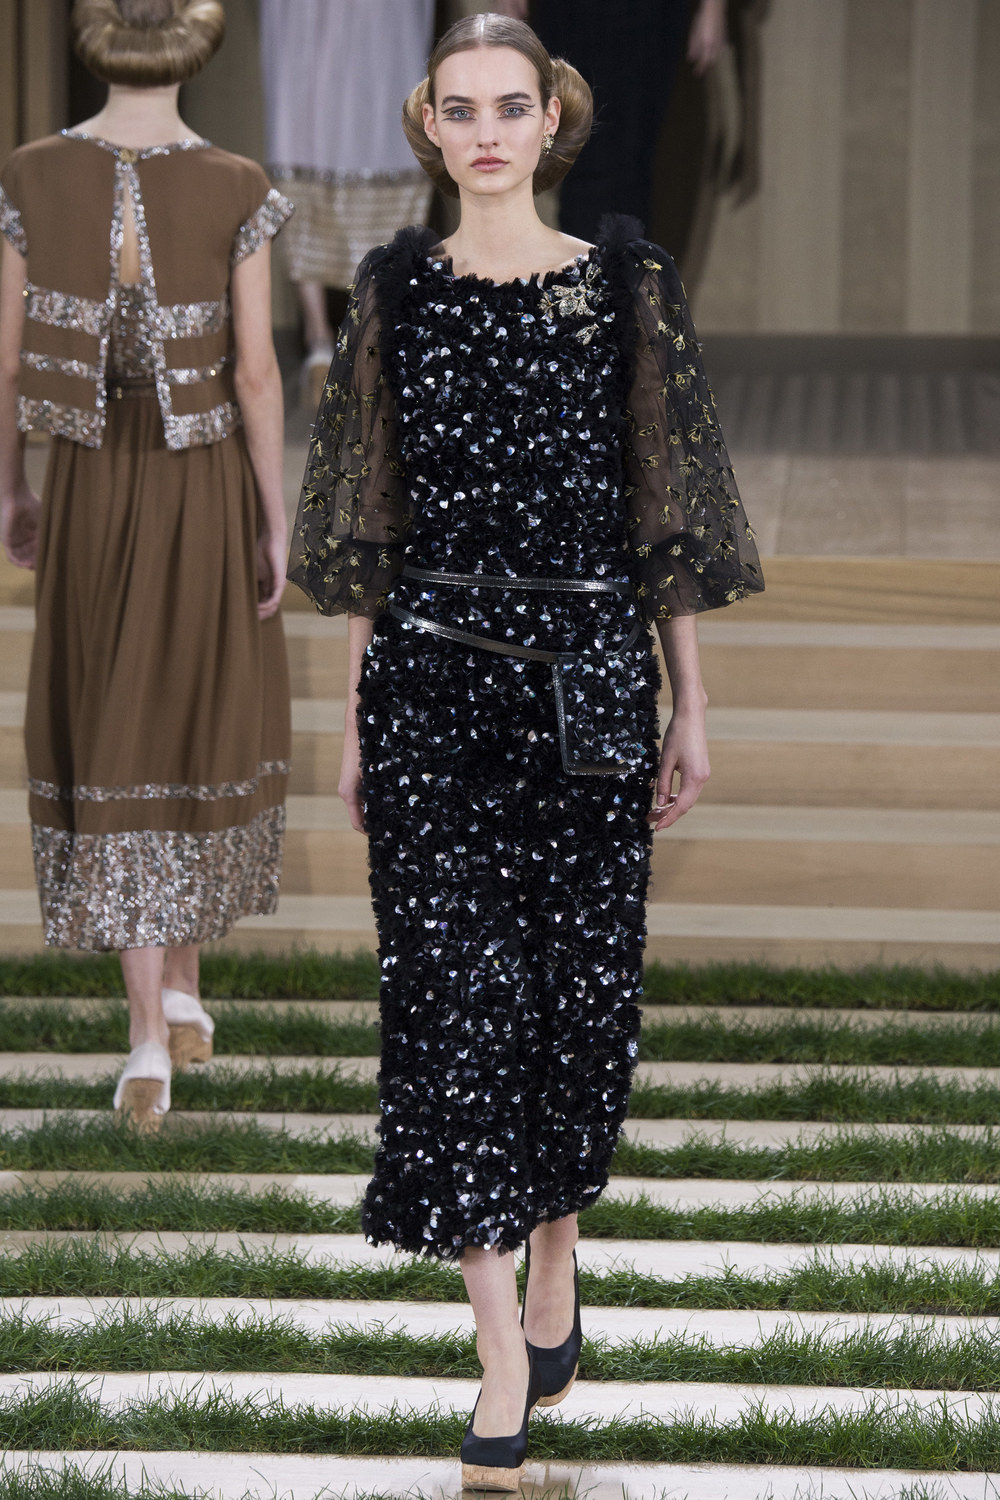 Chanel-Couture-Spring-2016-Paris-Fashion-Week-13.jpg